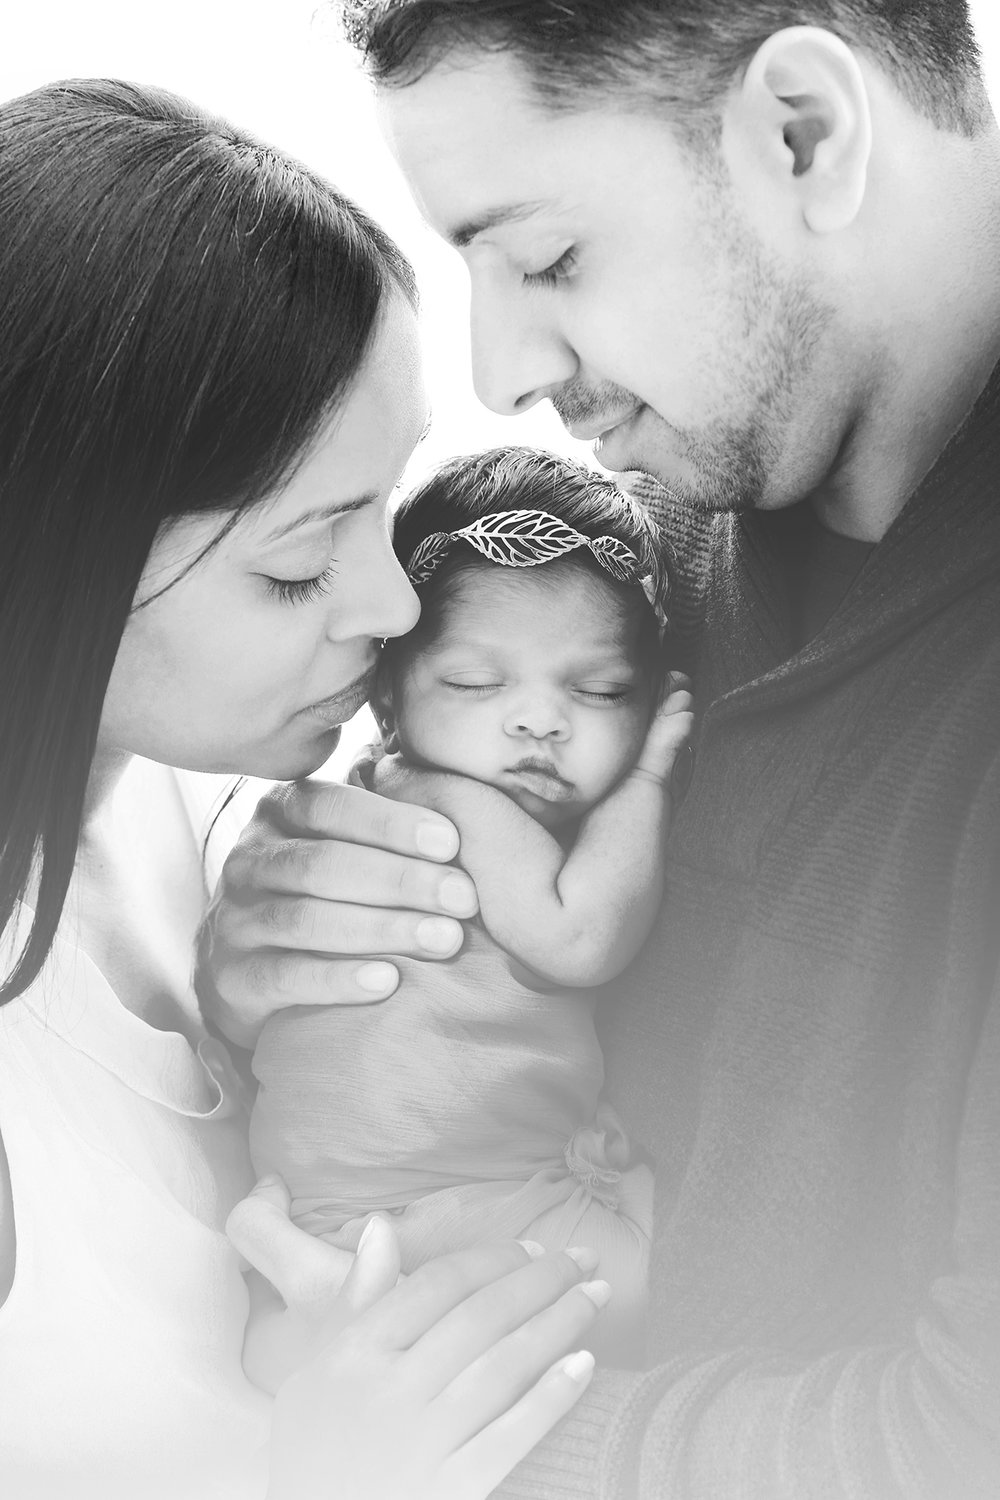 mom-dad-newborn-family-portrait.jpg